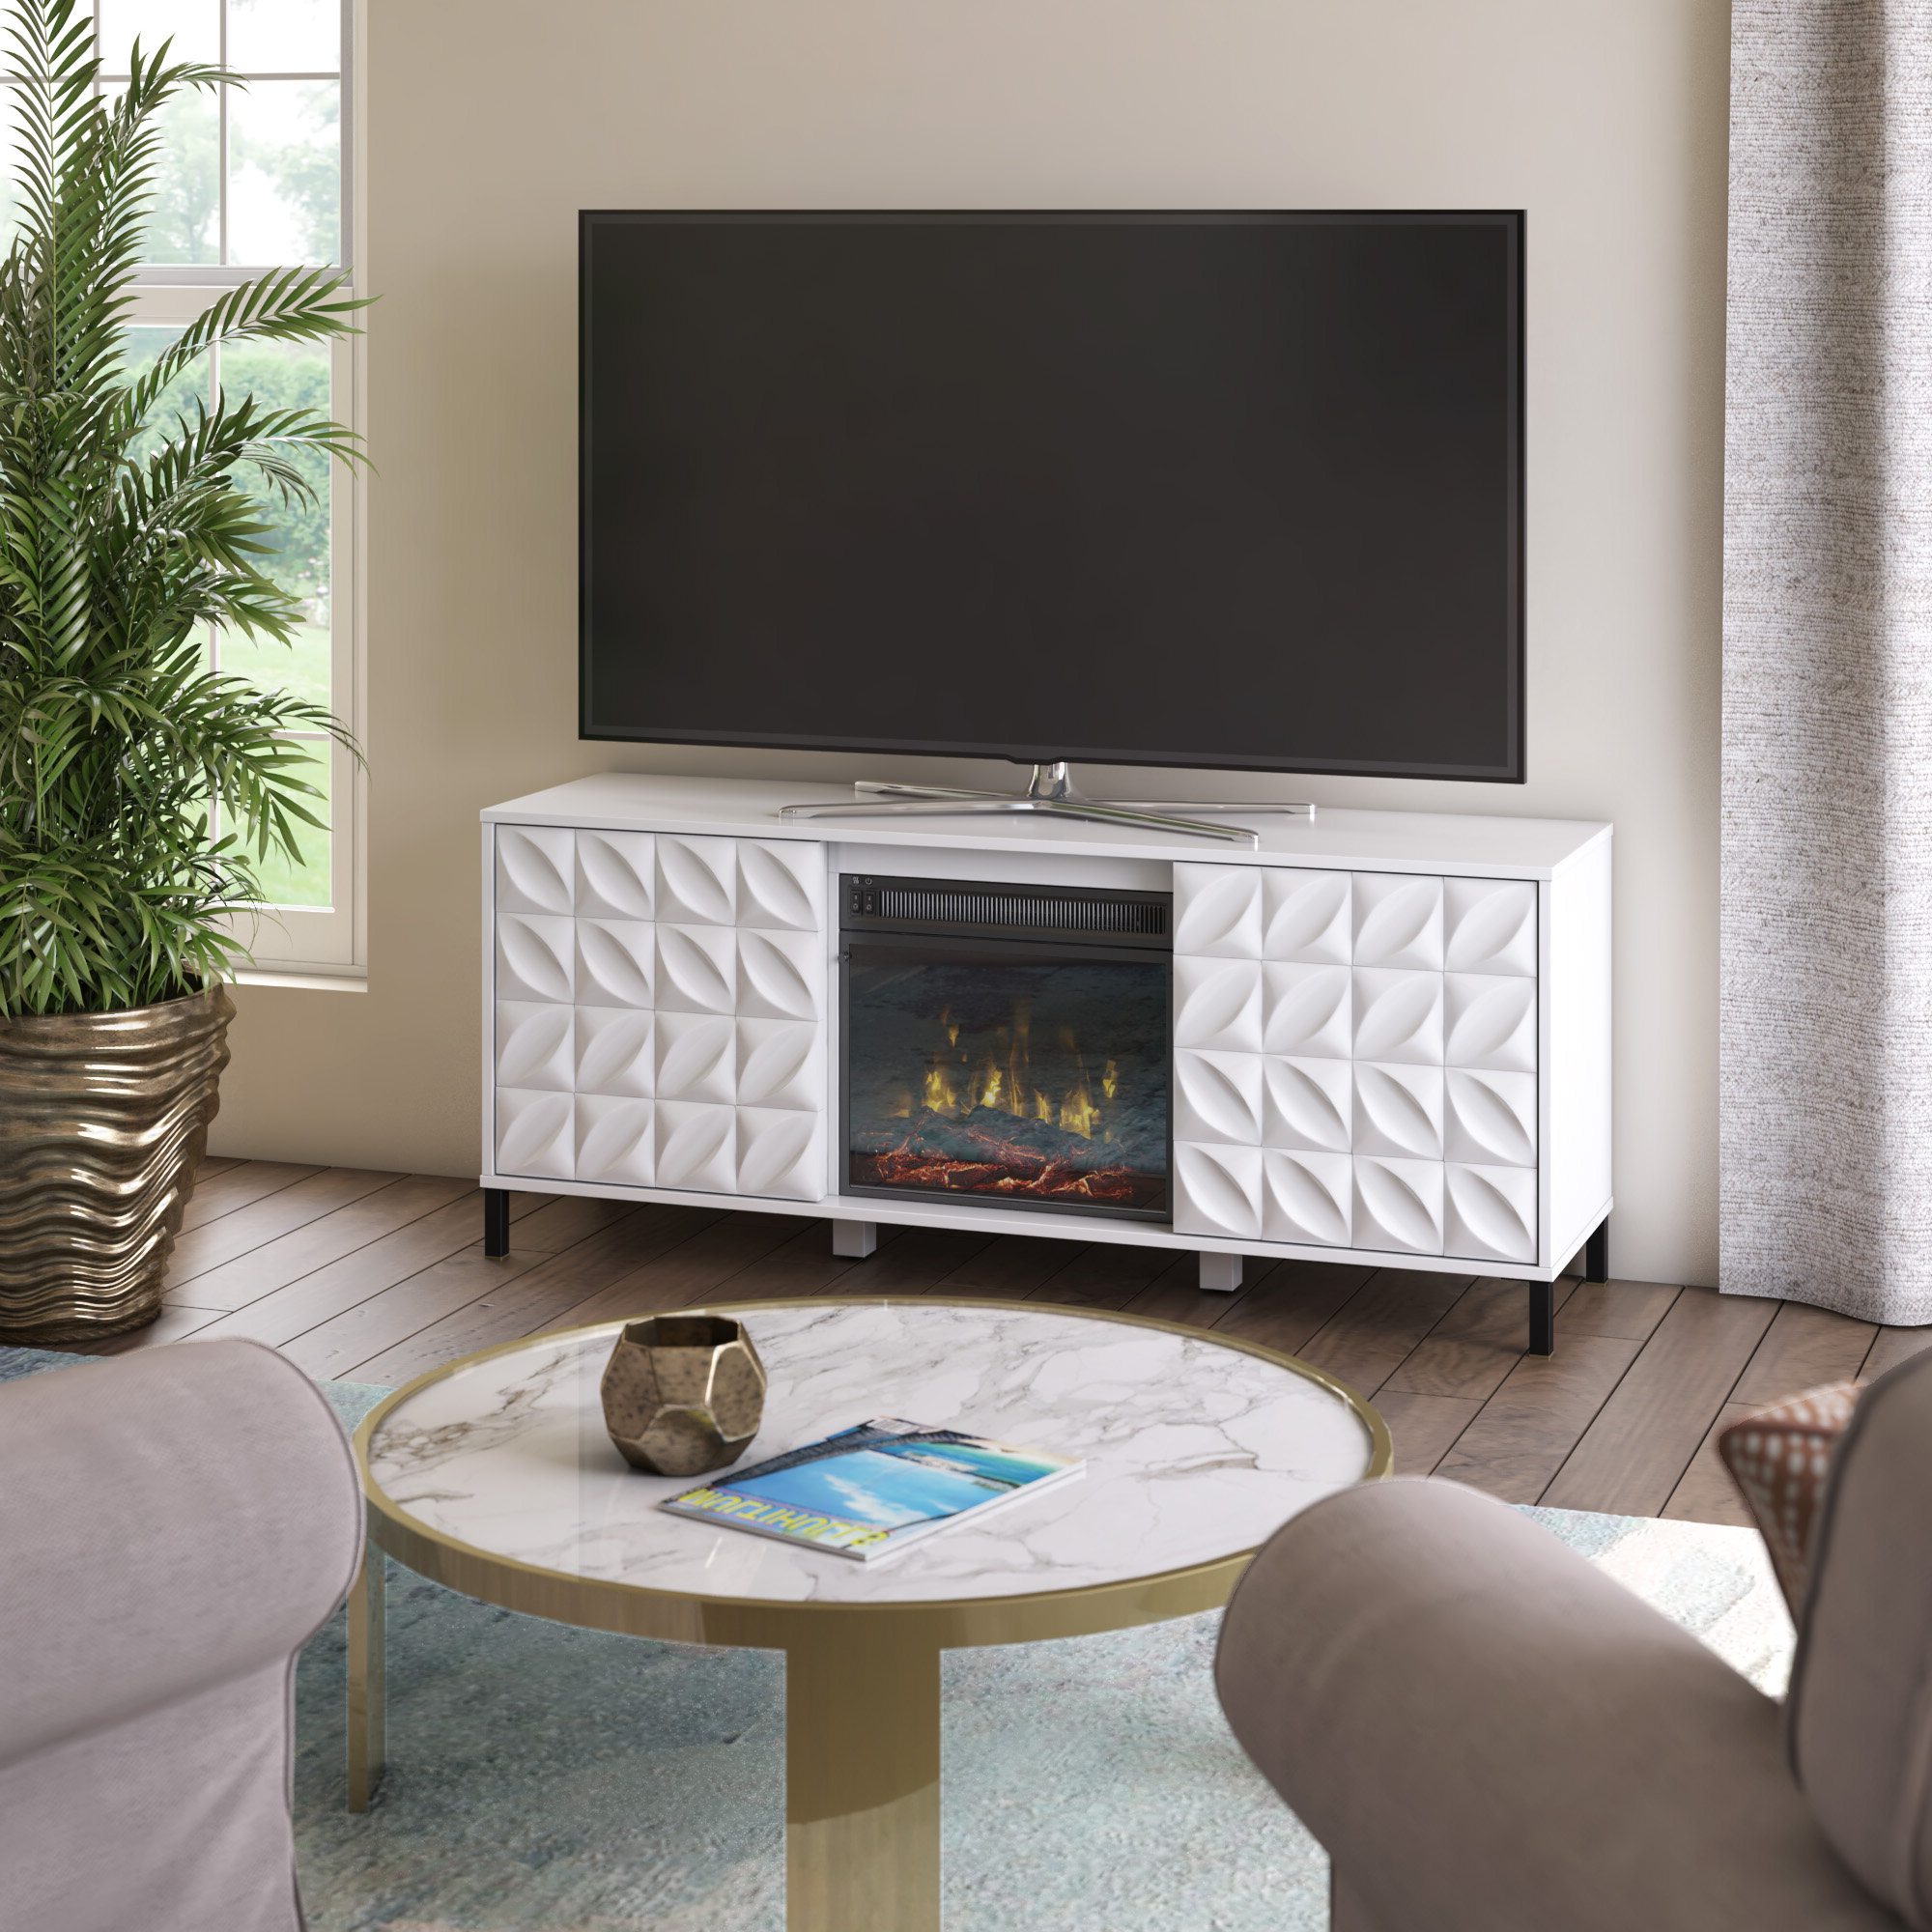 """Mitchellville Tv Stand For Tvs Up To 60"""" With Electric Fireplace Included For Eutropios Tv Stand With Electric Fireplace Included (View 14 of 20)"""